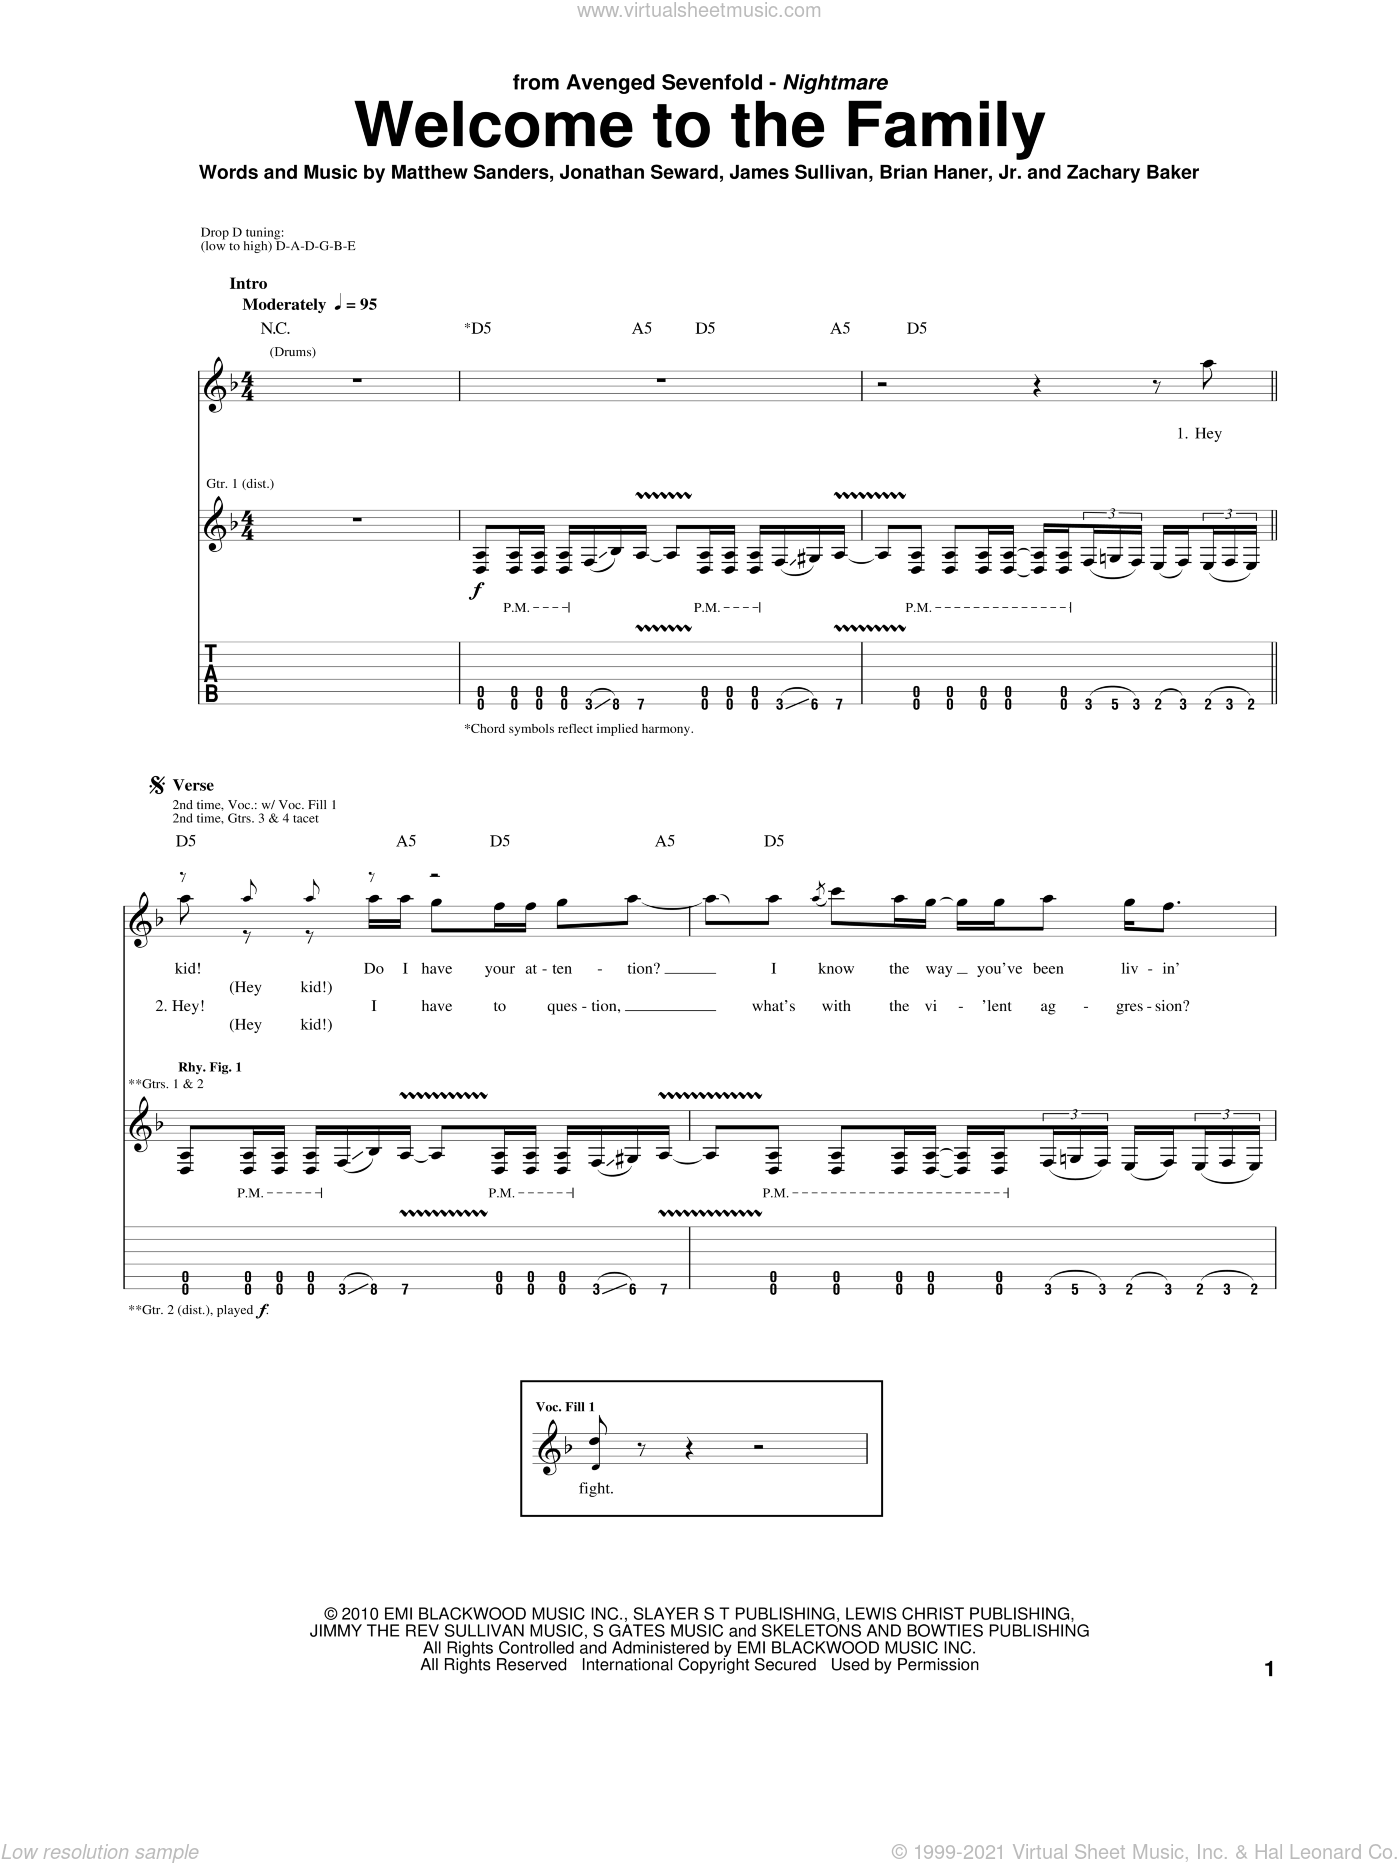 Welcome To The Family sheet music for guitar (tablature) by Zachary Baker